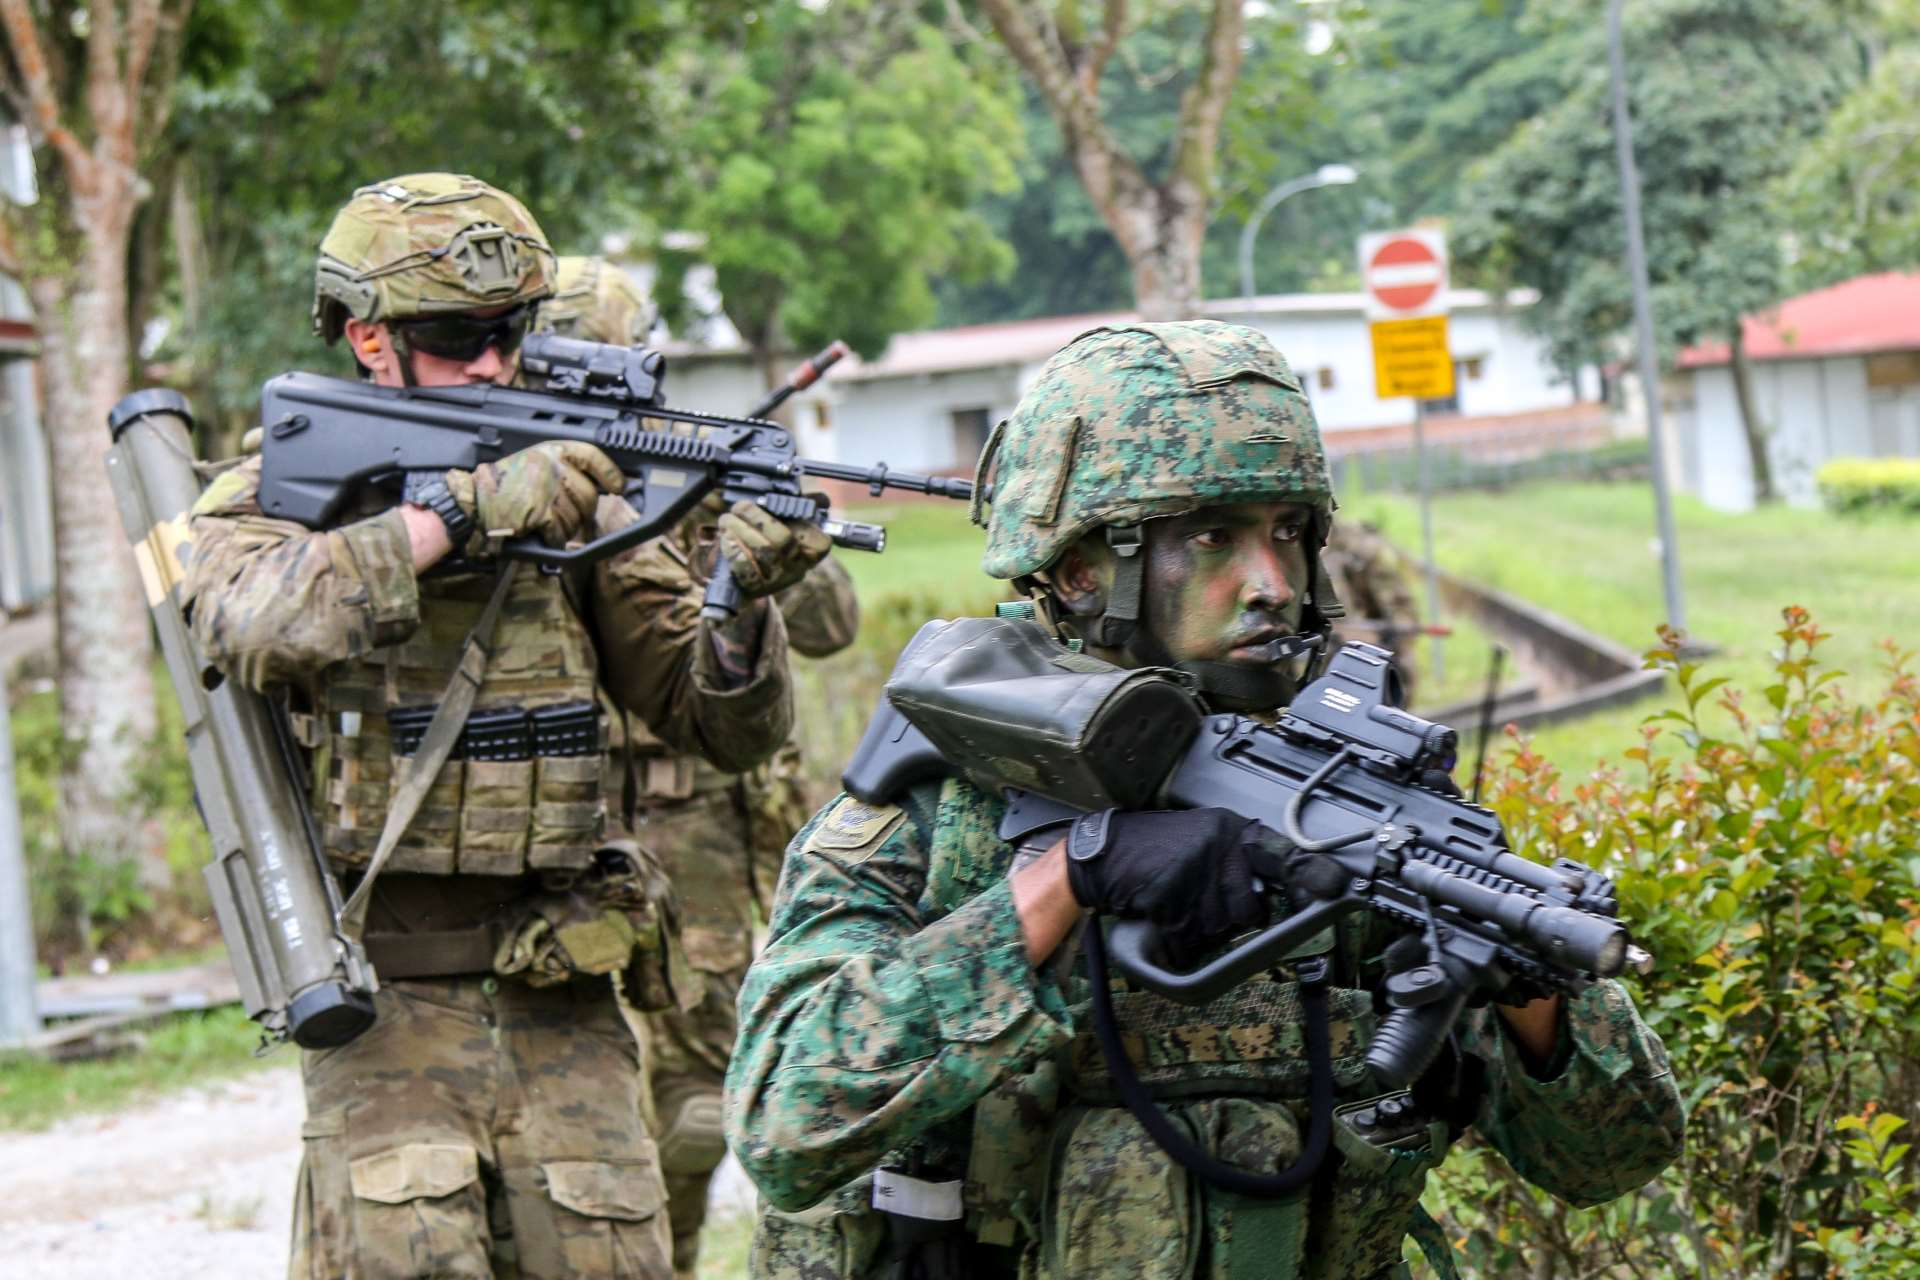 Exercise participants from the Army Deployment Force and the Australian Defence Force's Rifle Company Butterworth preparing to storm a building during the integrated company manoeuvre exercise.